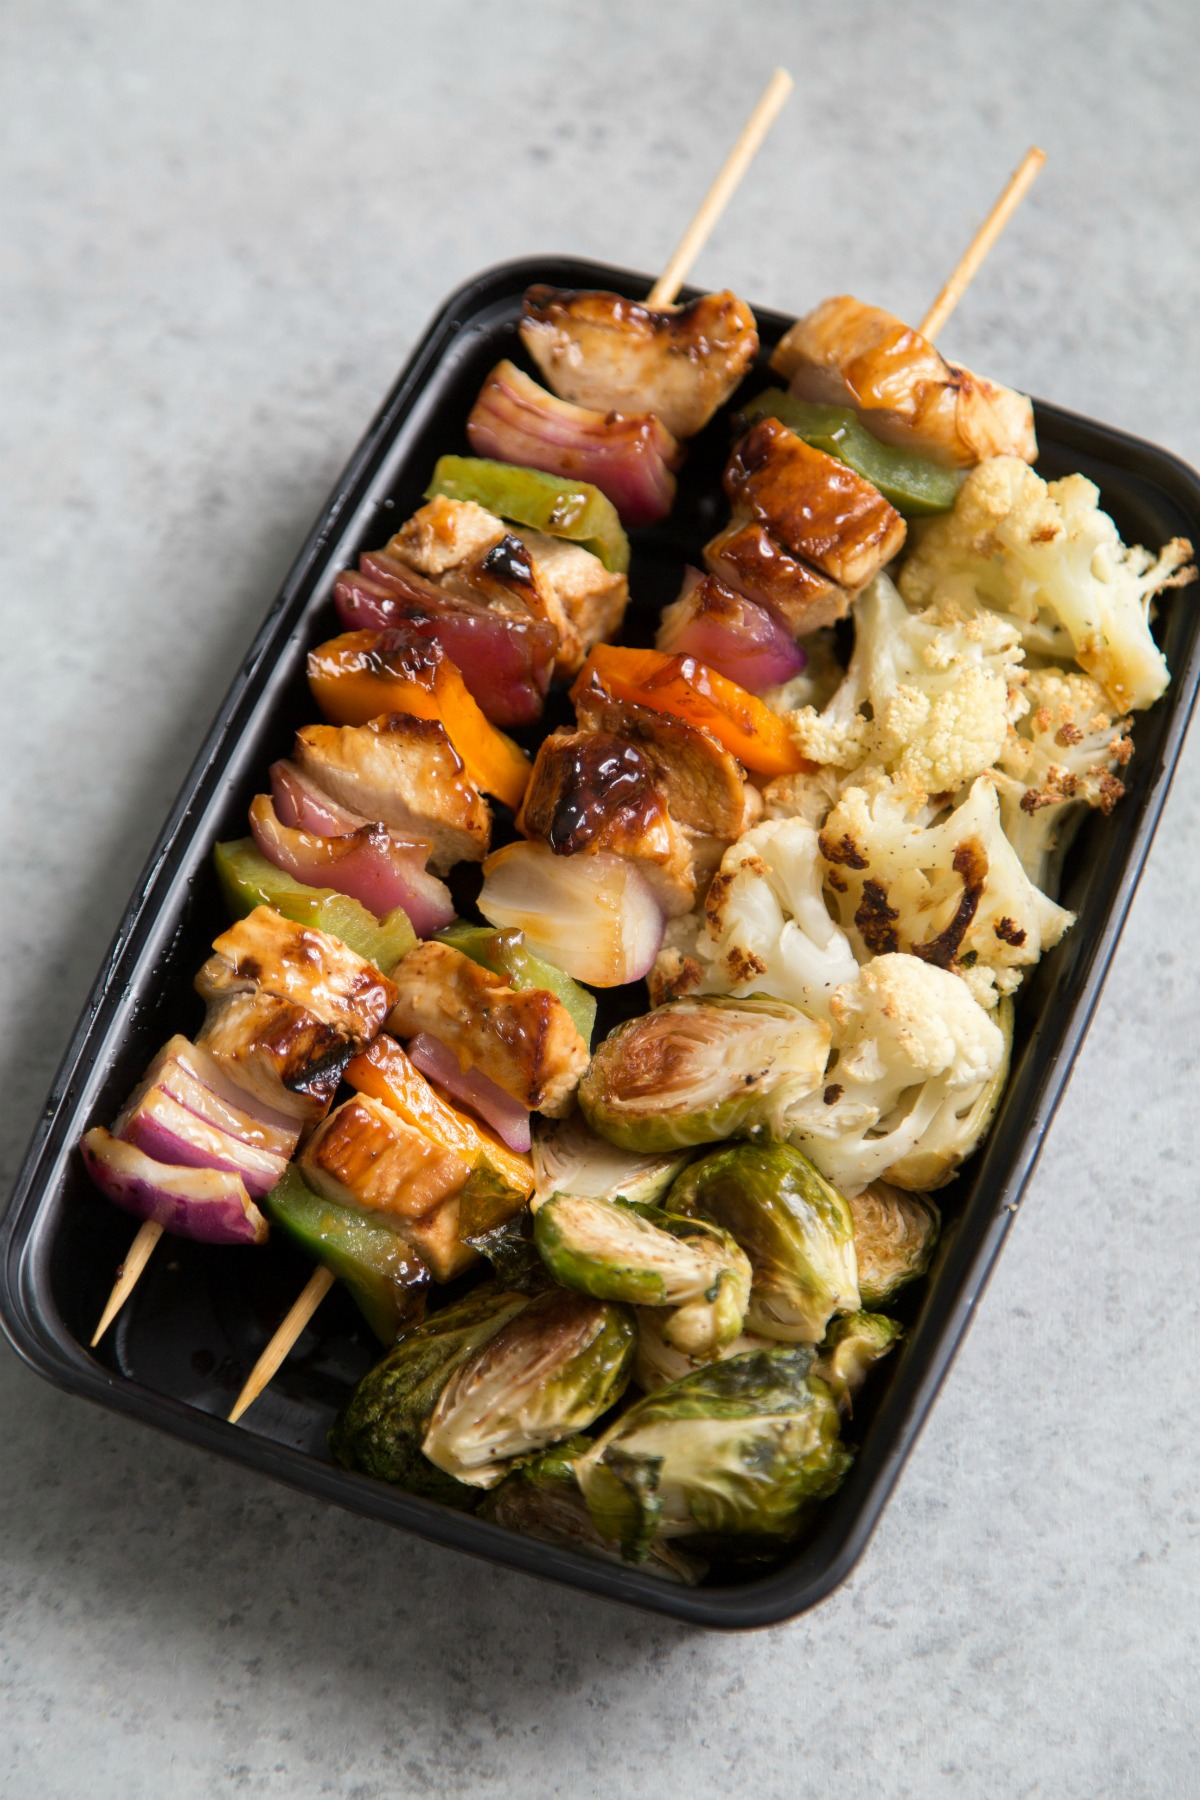 Paleo Hawaiian Chicken Teriyaki Skewer Meal Prep